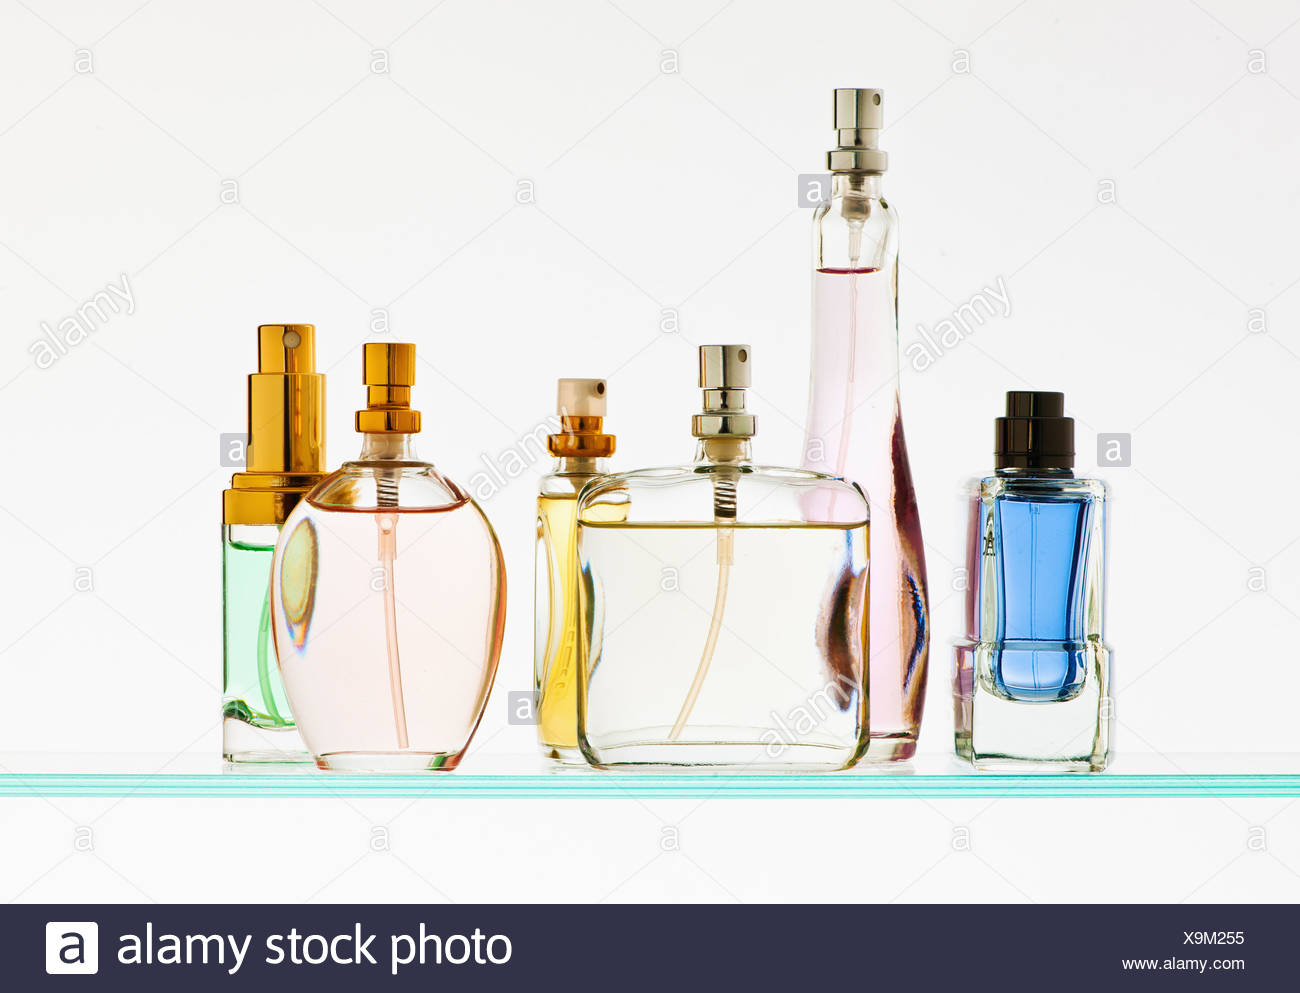 Close up of perfume sprayers - Stock Image